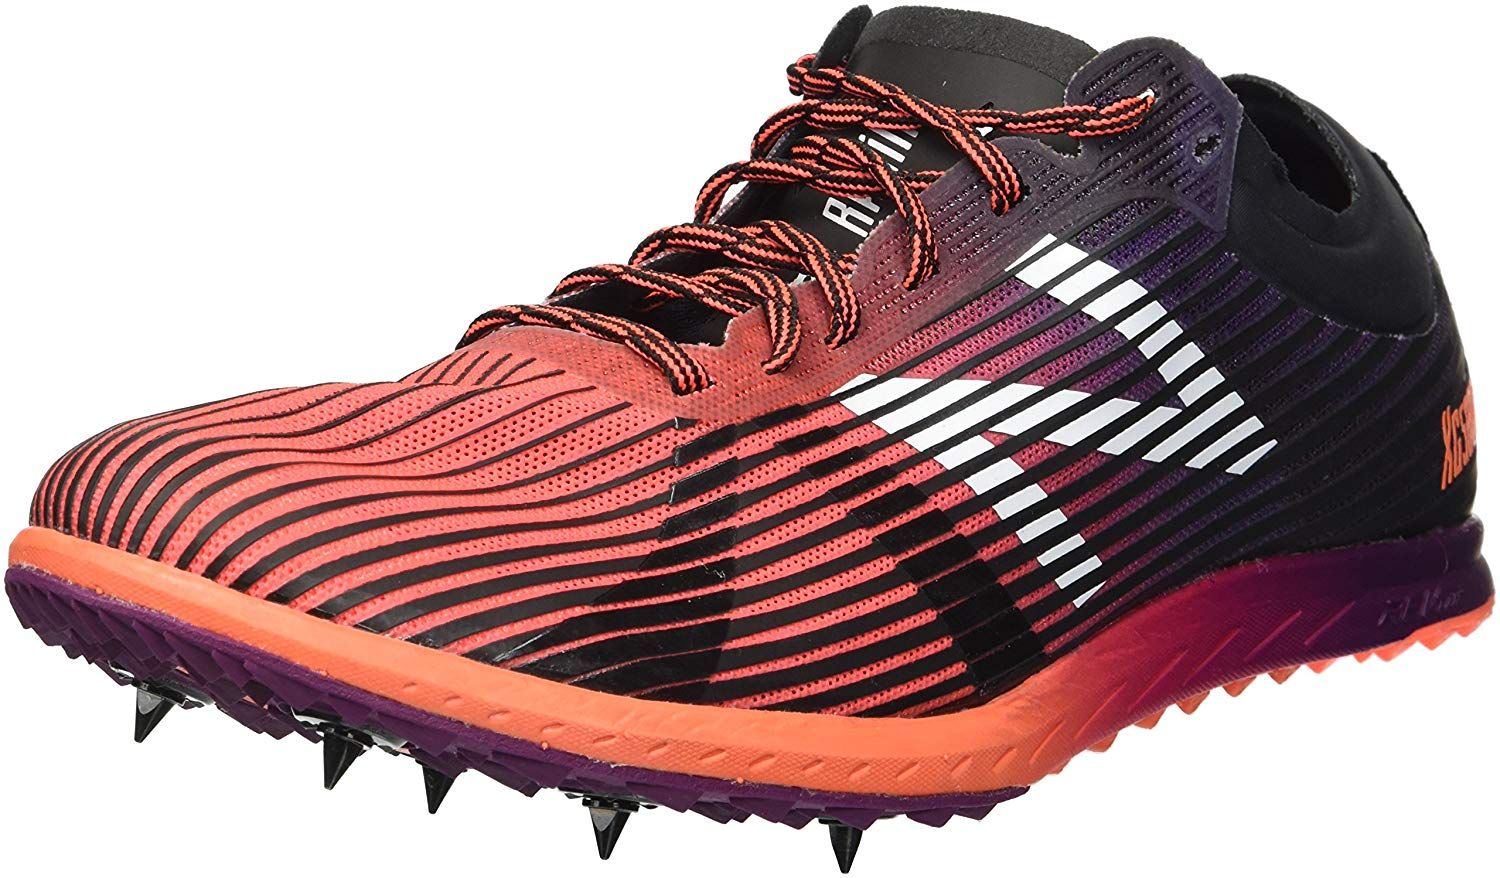 low priced 33a86 1c508 Details about New Balance Women's 5k V4 Cross Country Running Shoe